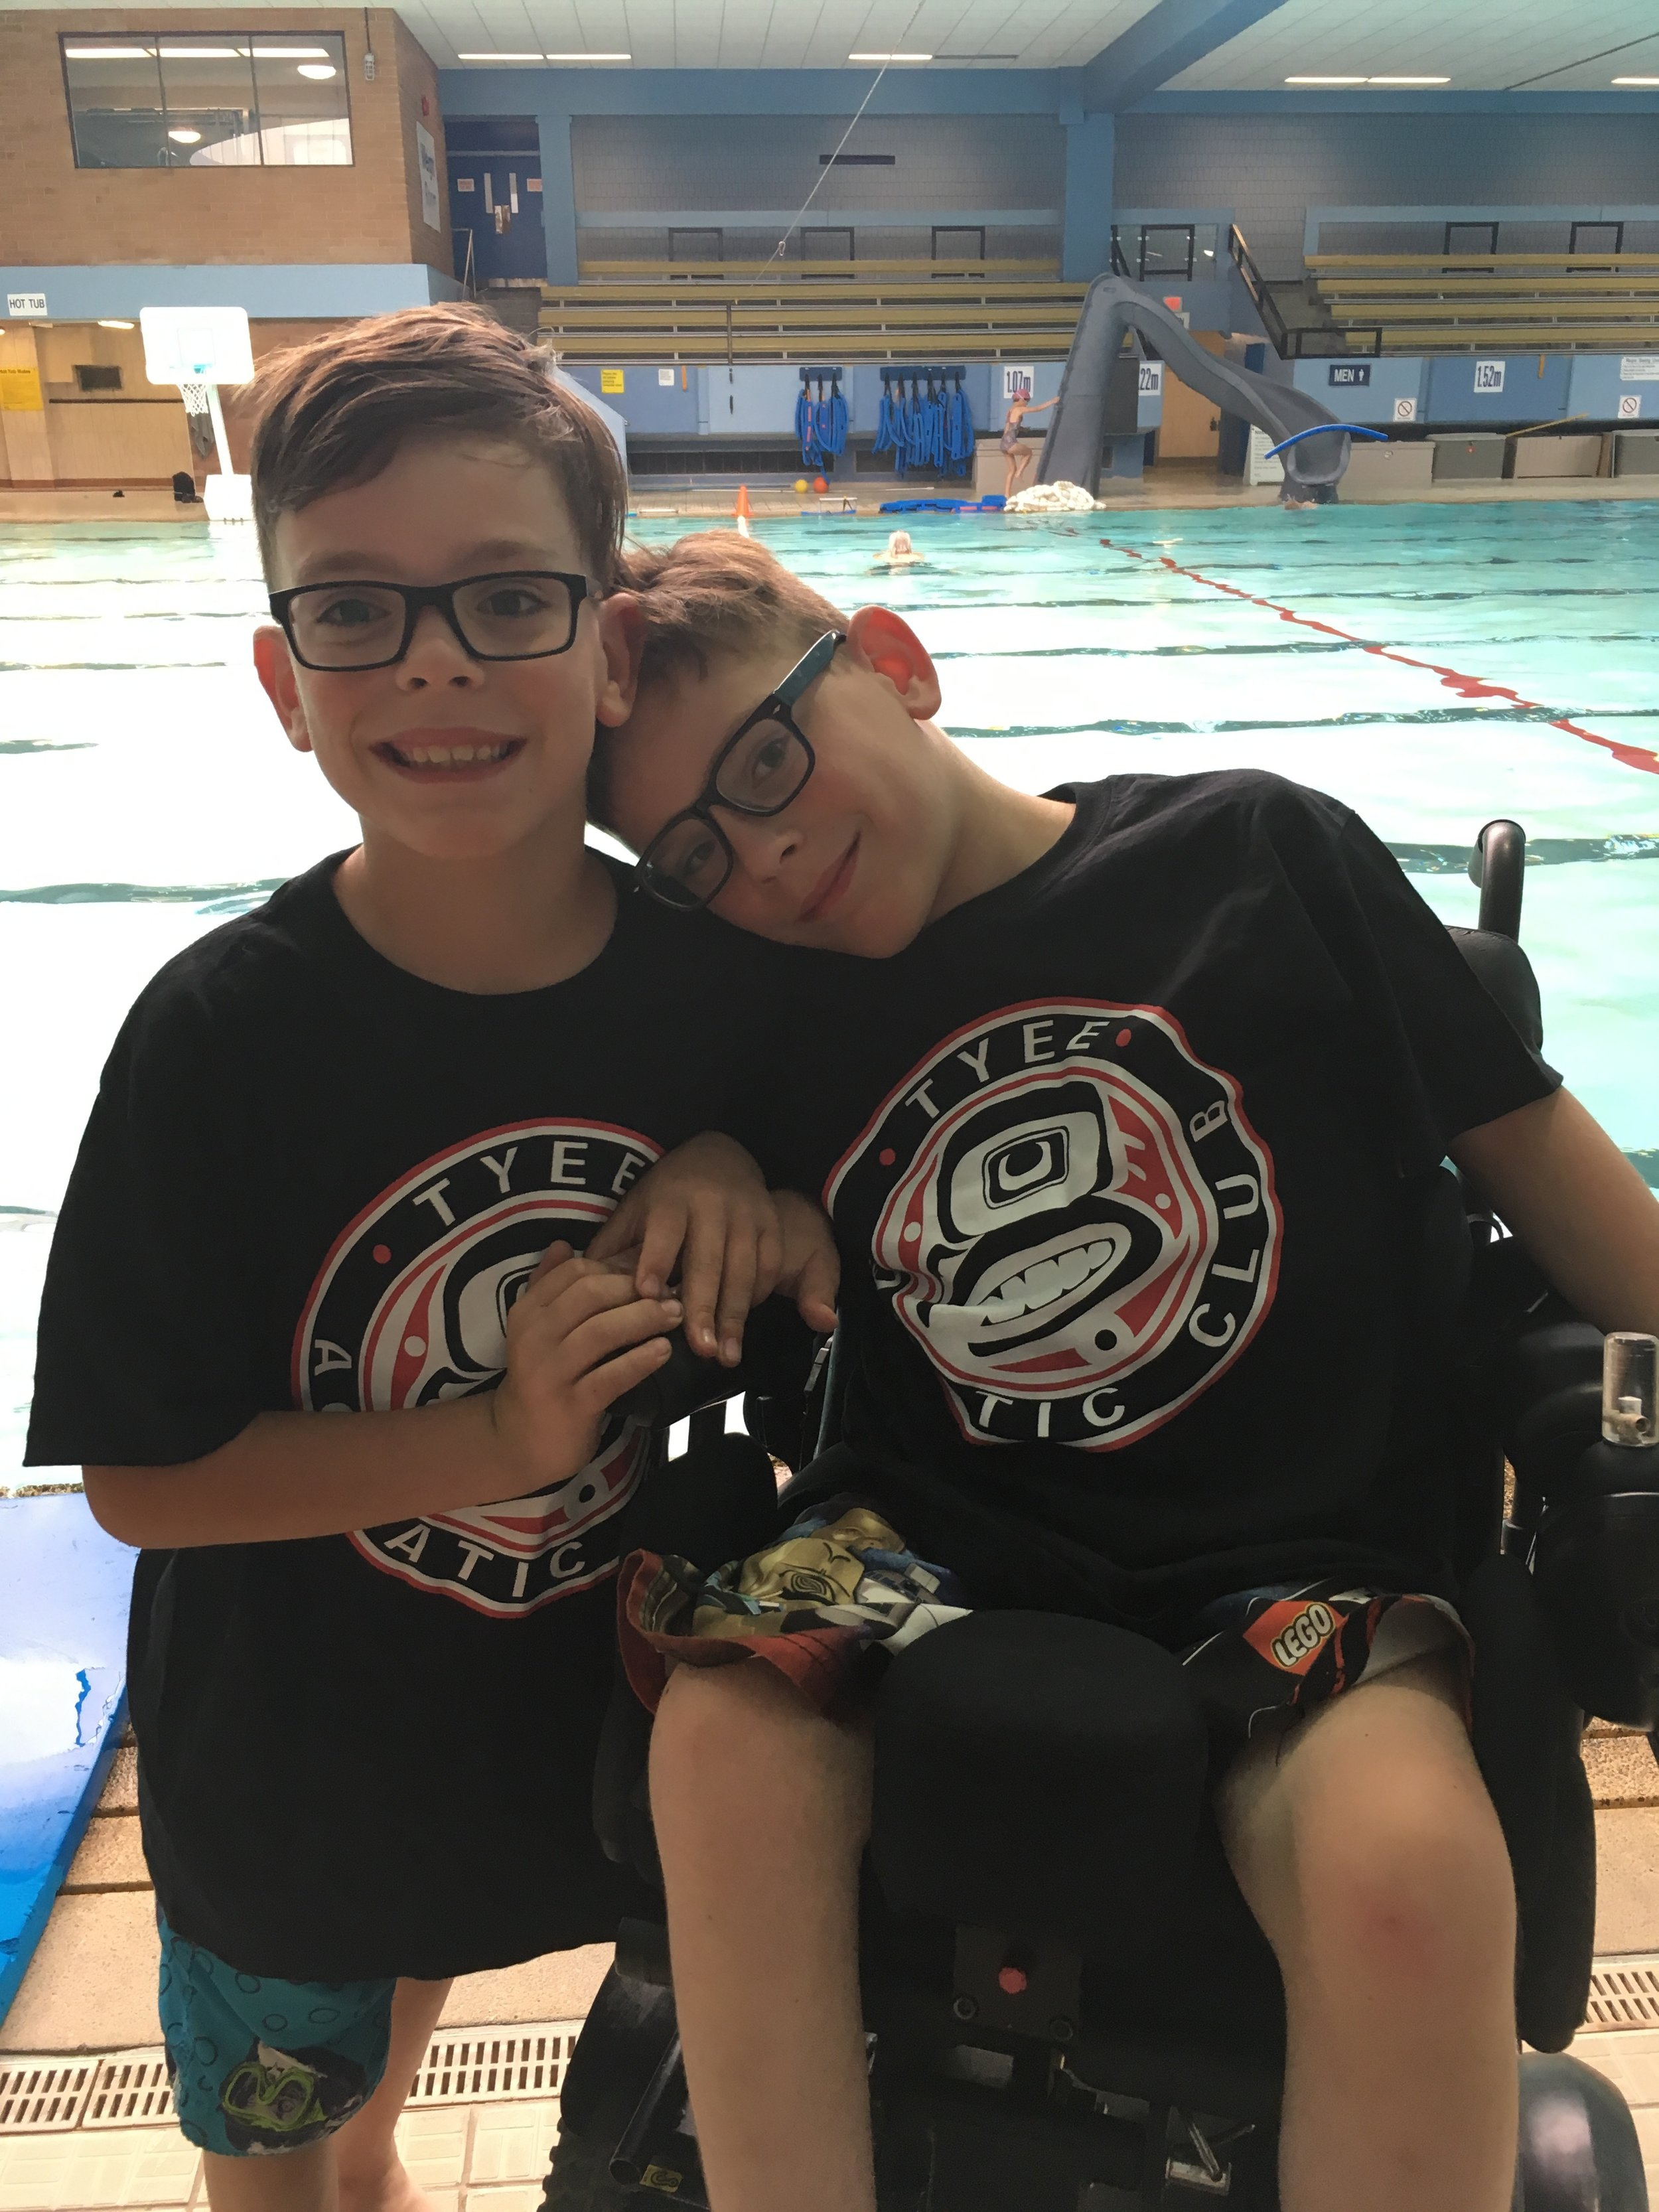 Thank you Jumpstart! - Tyee Aquatic Club is proud to have received Jumpstart's Parasport Fund for the 2018/2019 Season. With the help of this fund we are able to provide one on one private lessons for children with impairments and help them realize their potential in the water.